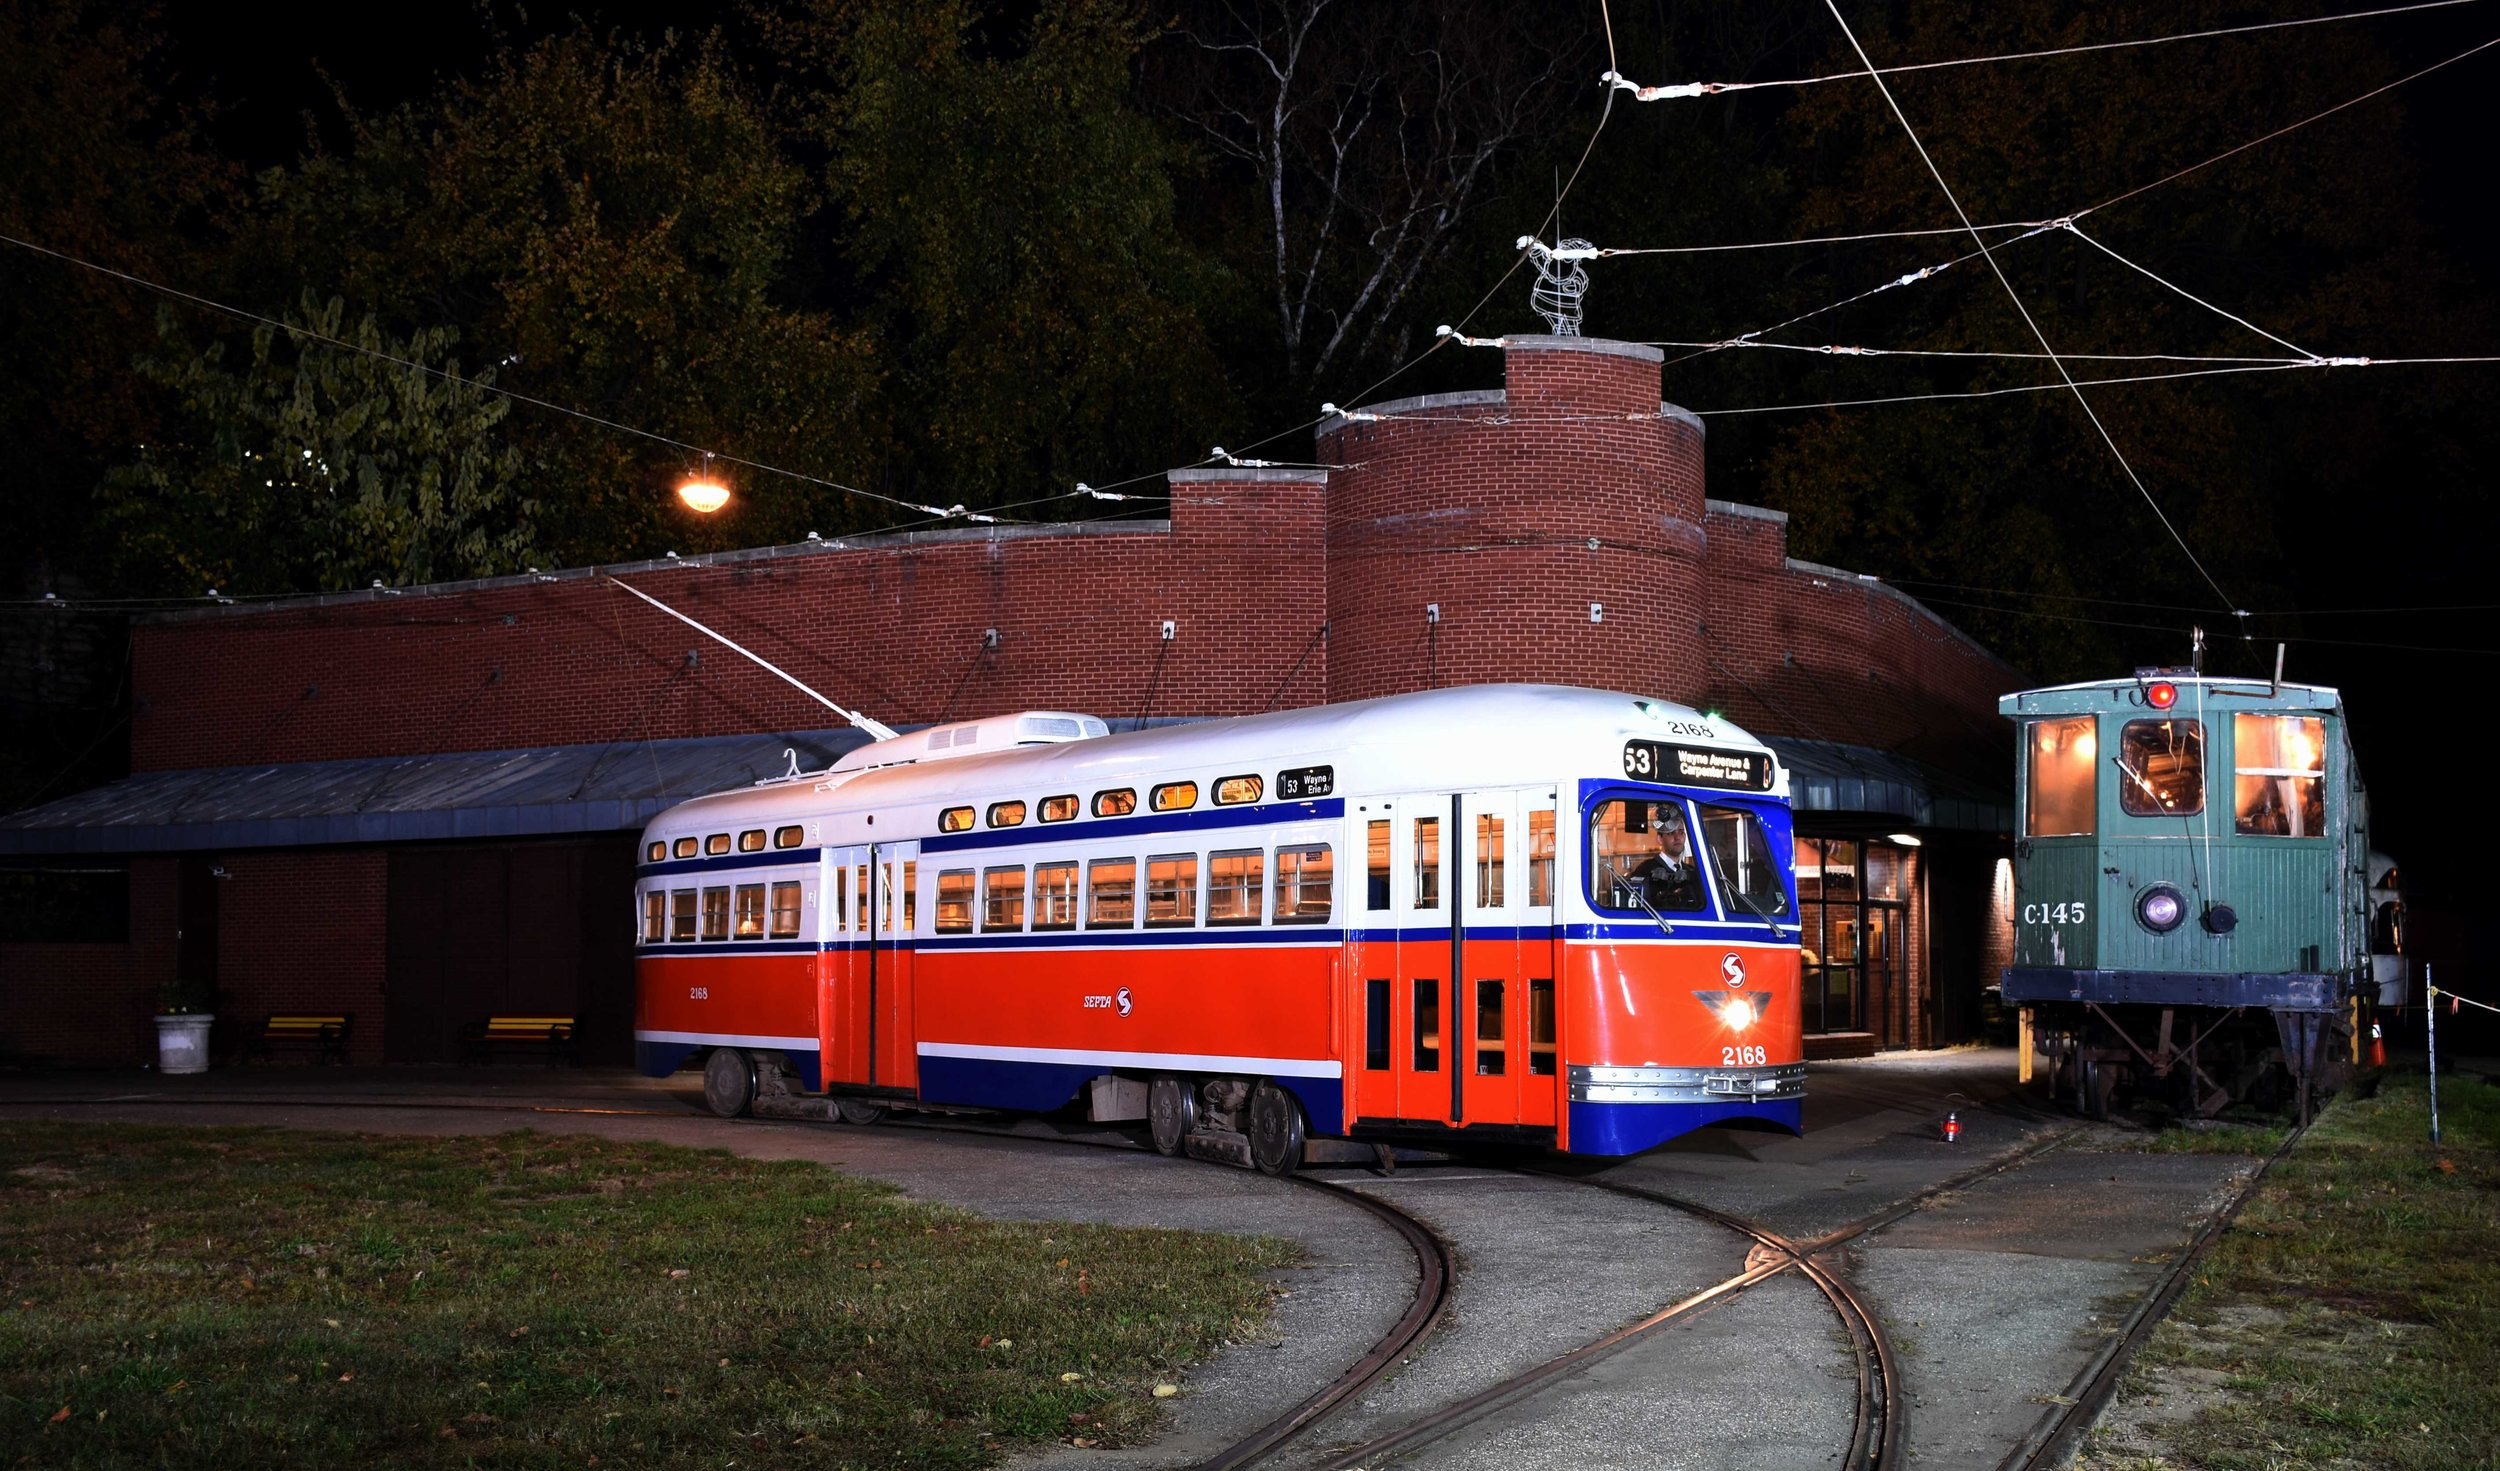 "Friends of Philadelphia Trolleys ""$20 Day"" at the Baltimore Streetcar Museum, November 5, 2016. Flash lighting provide by Bruce Barry, Steve Barry and Michael Burkhart Image Credit: Bill Monaghan"